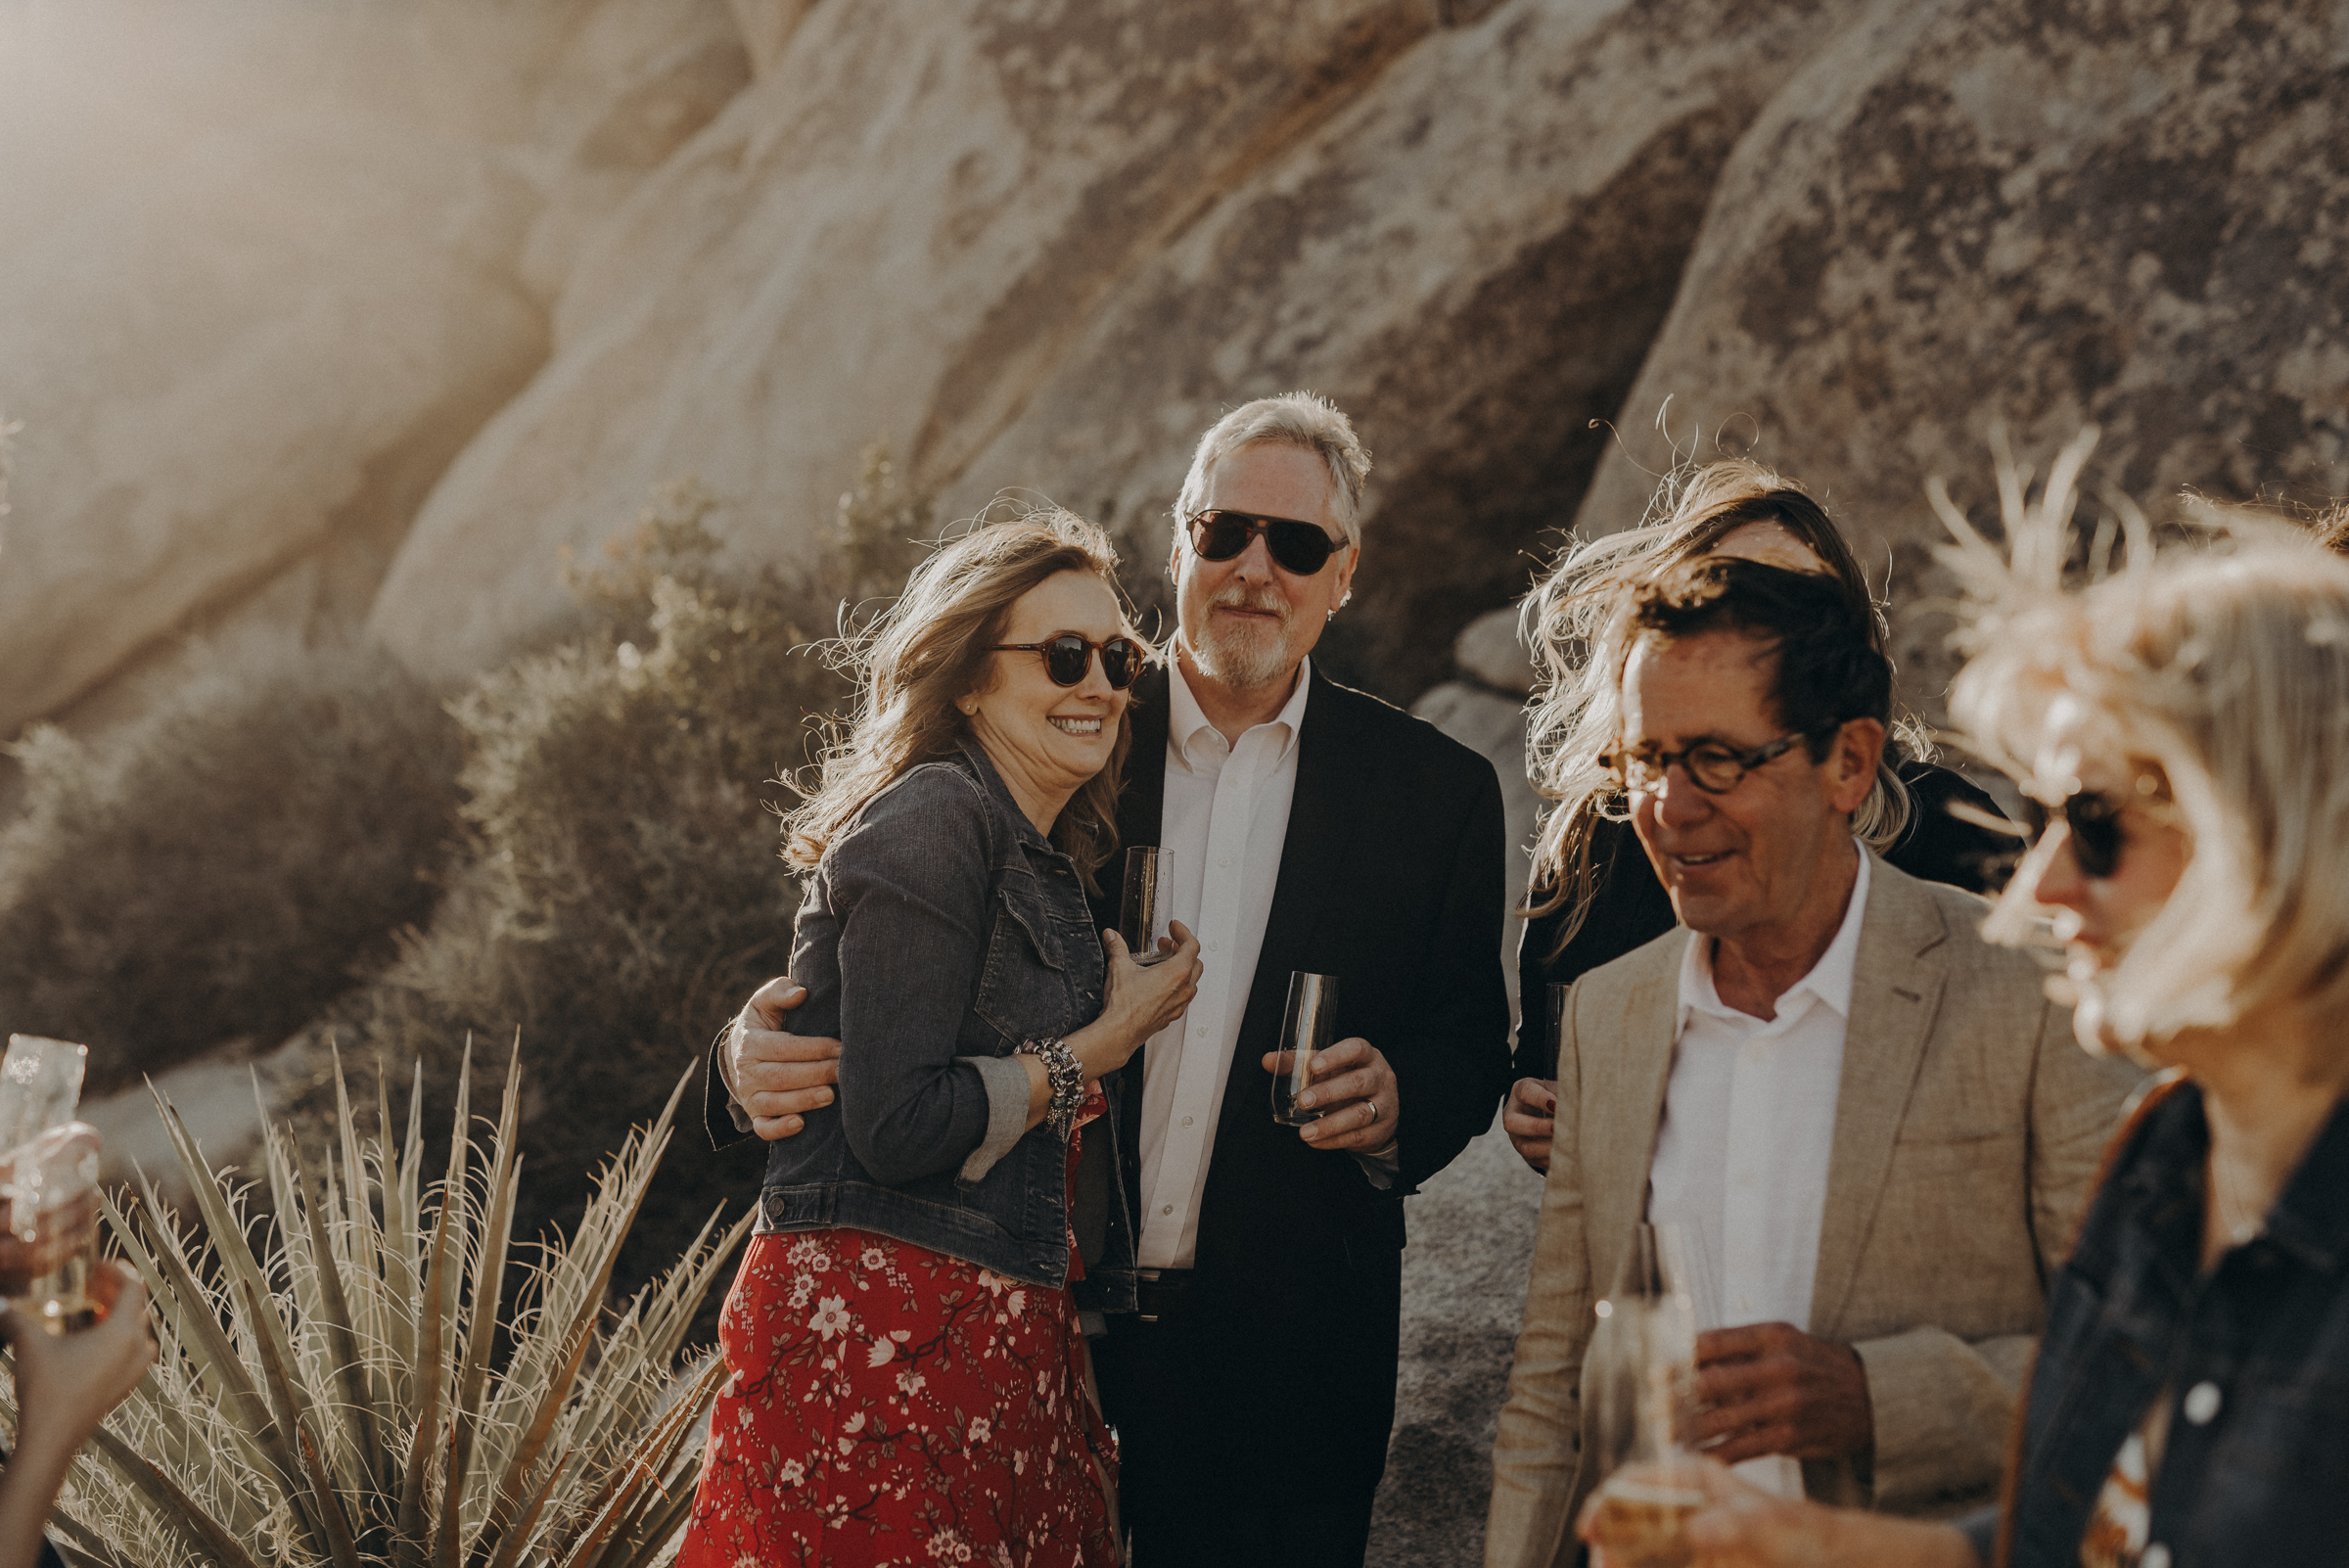 Joshua Tree Elopement - Los Angeles Wedding Photographers - IsaiahAndTaylor.com-047.jpg